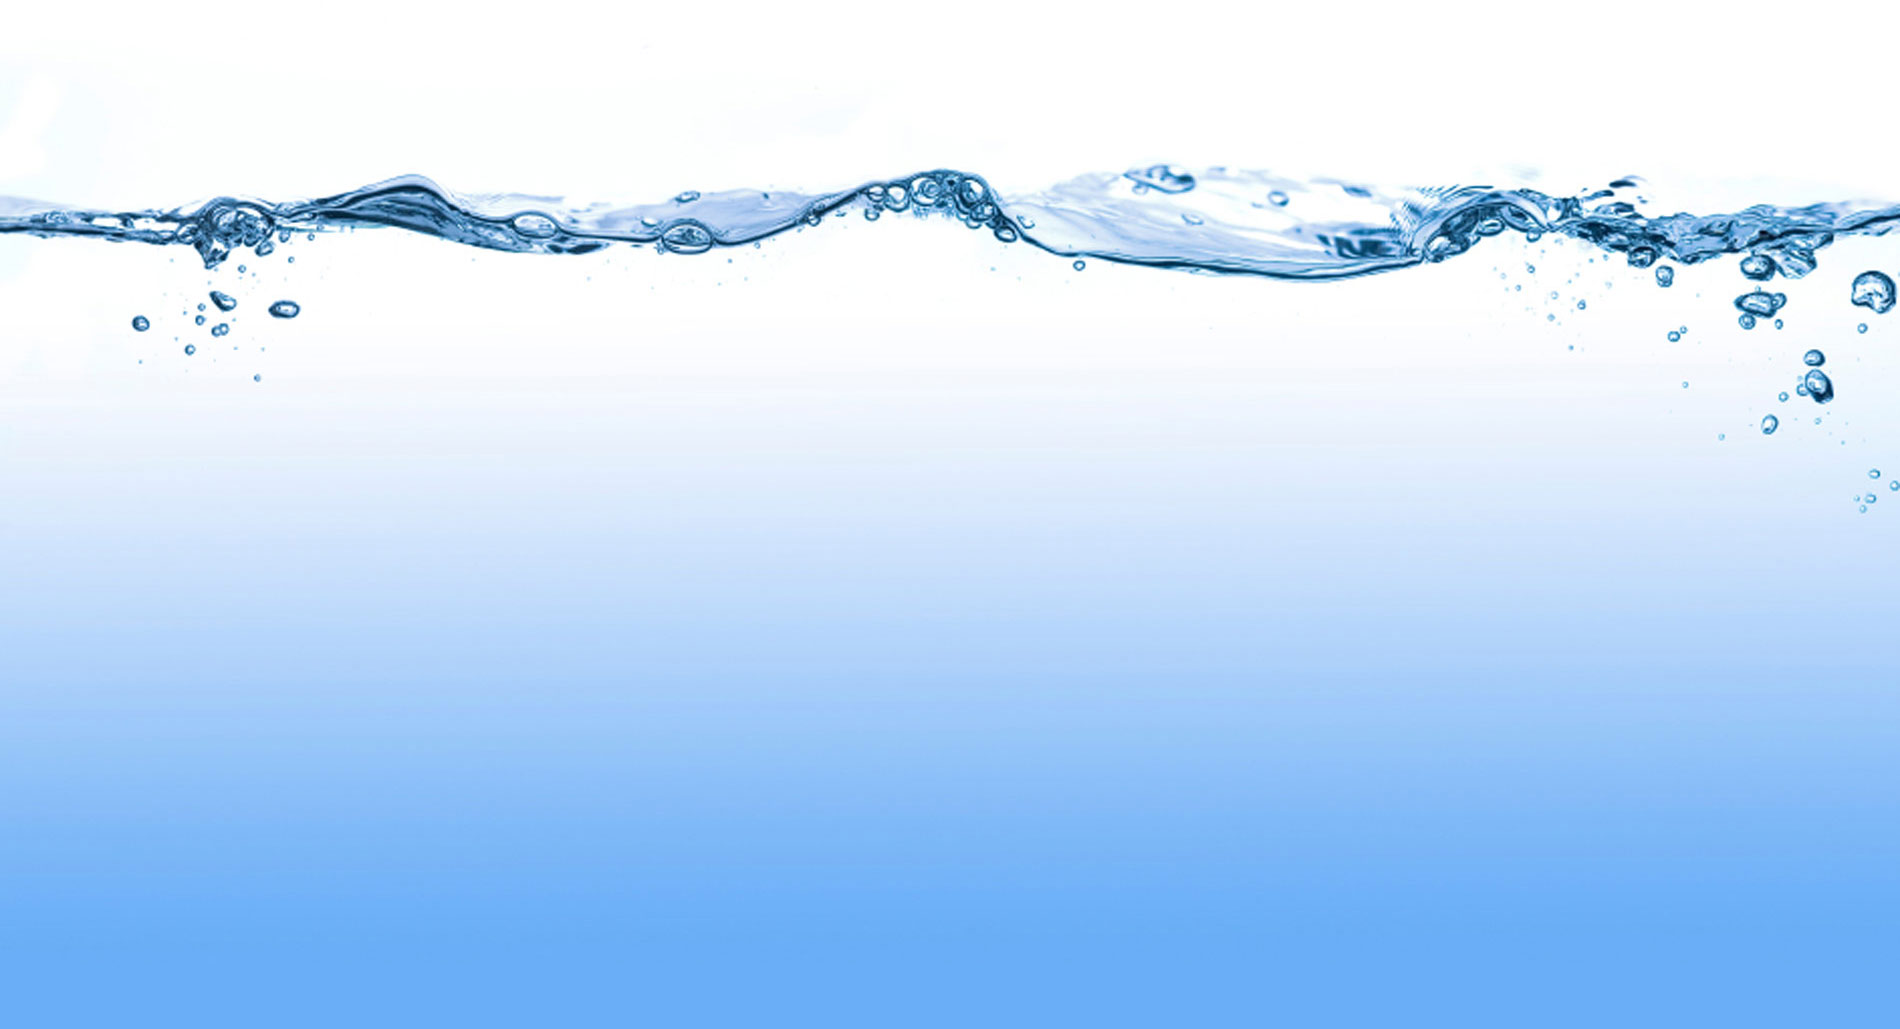 Water Backgrounds - WallpaperSafari